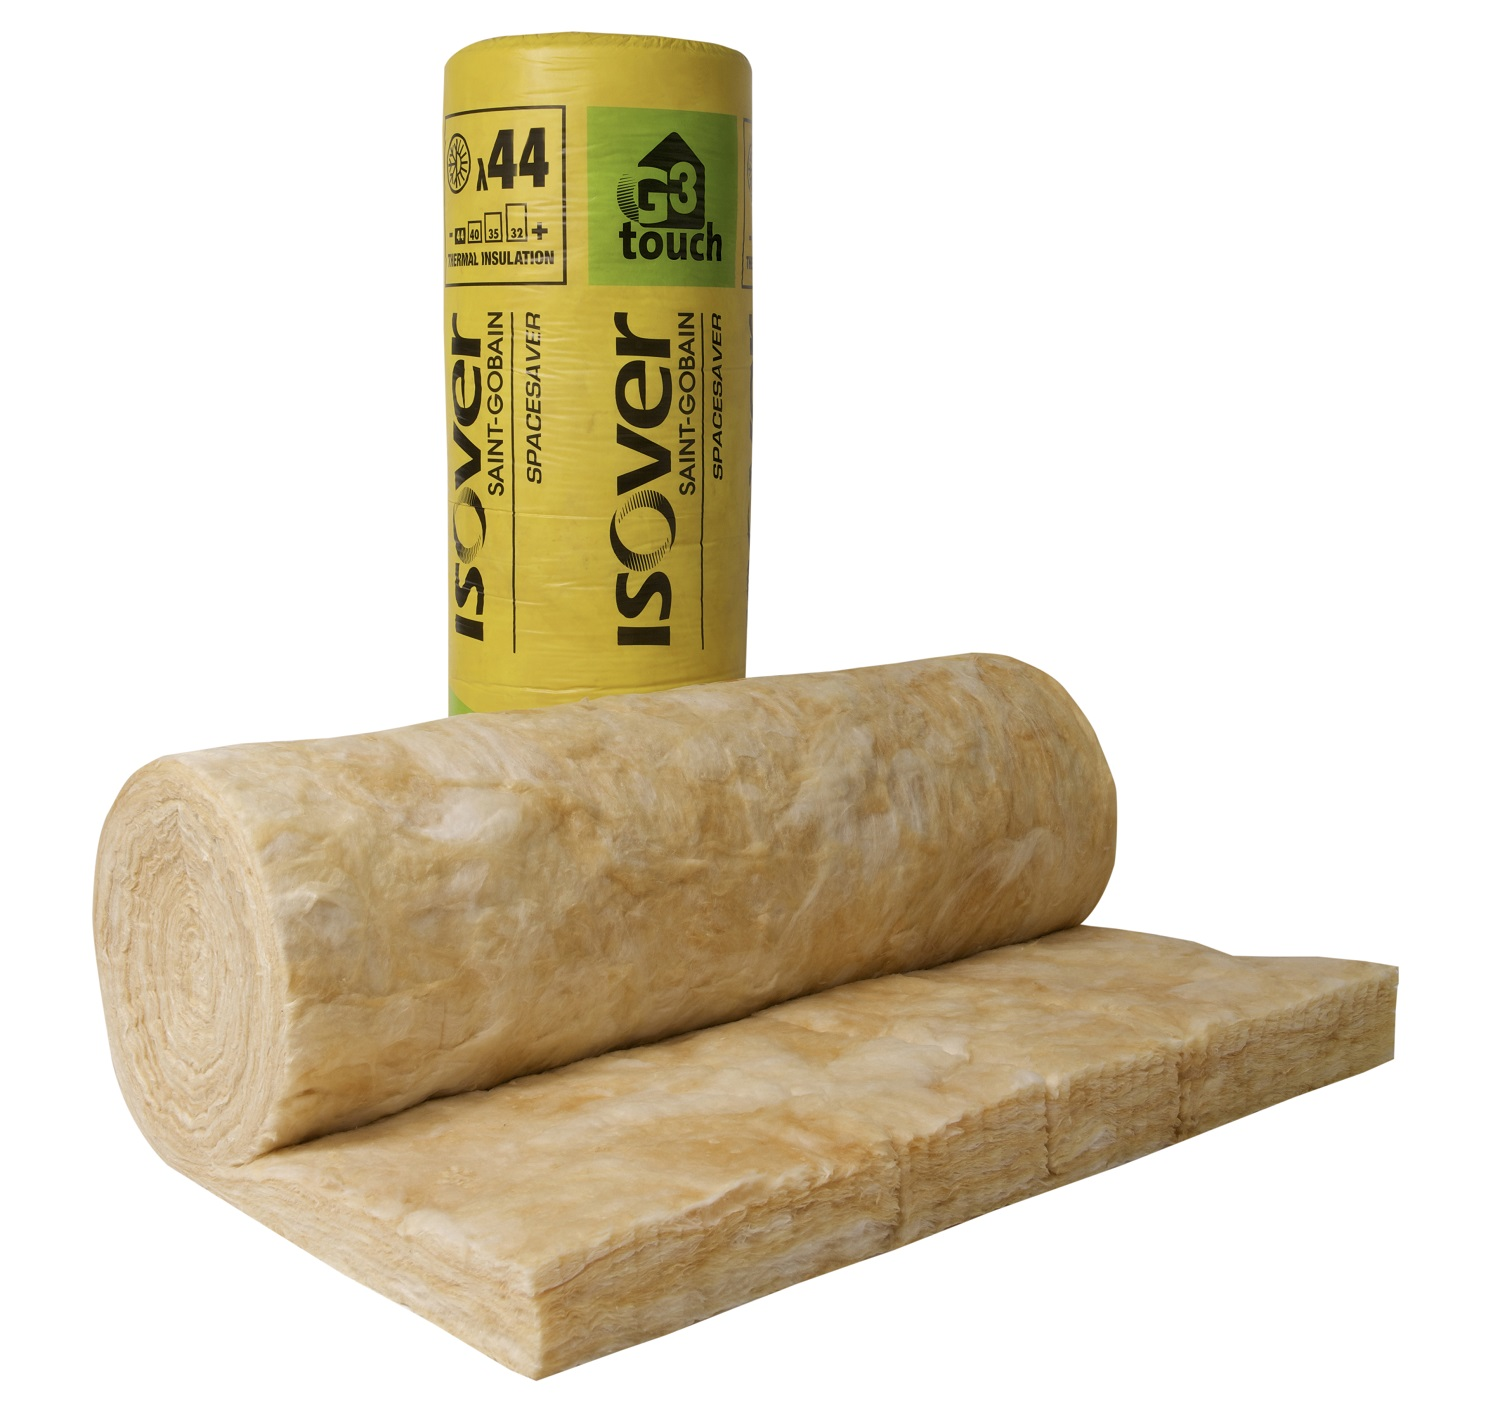 Isover spacesaver g3 touch mineral wool loft insulation for 3 mineral wool insulation